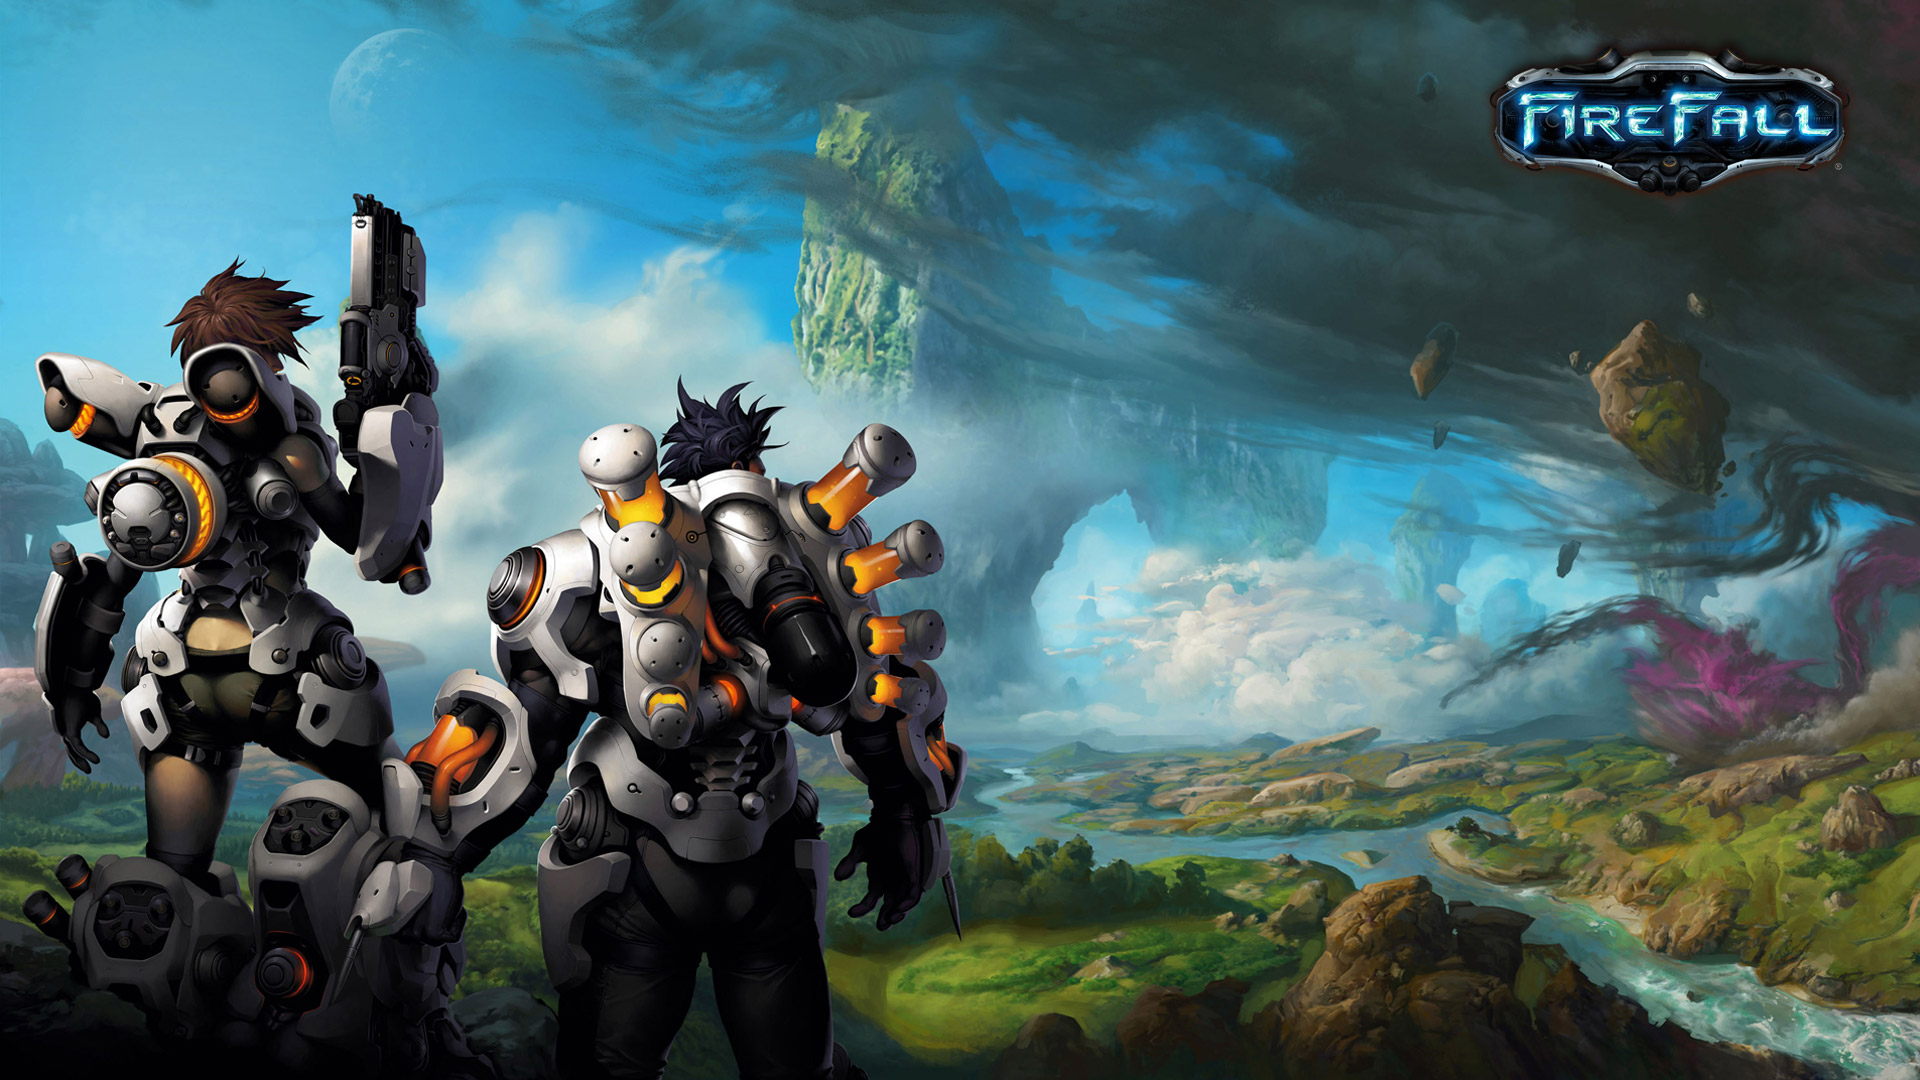 Free Firefall Wallpaper in 1920x1080